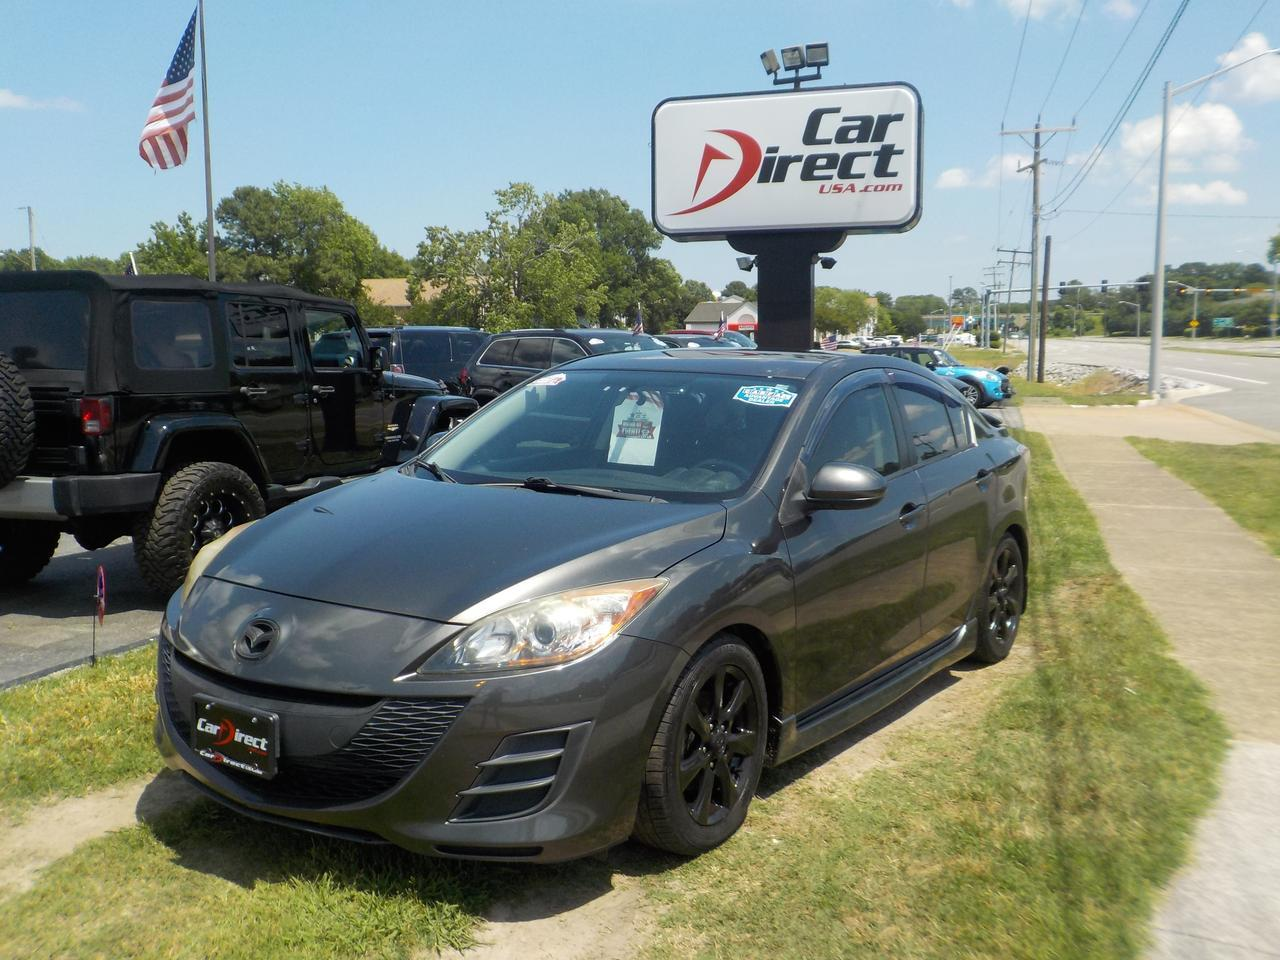 2010 MAZDA MAZDA3 i TOURING, WARRANTY, CD PLAYER, A/C, REAR SPOILER, LOW MILES ONLY 73K!!